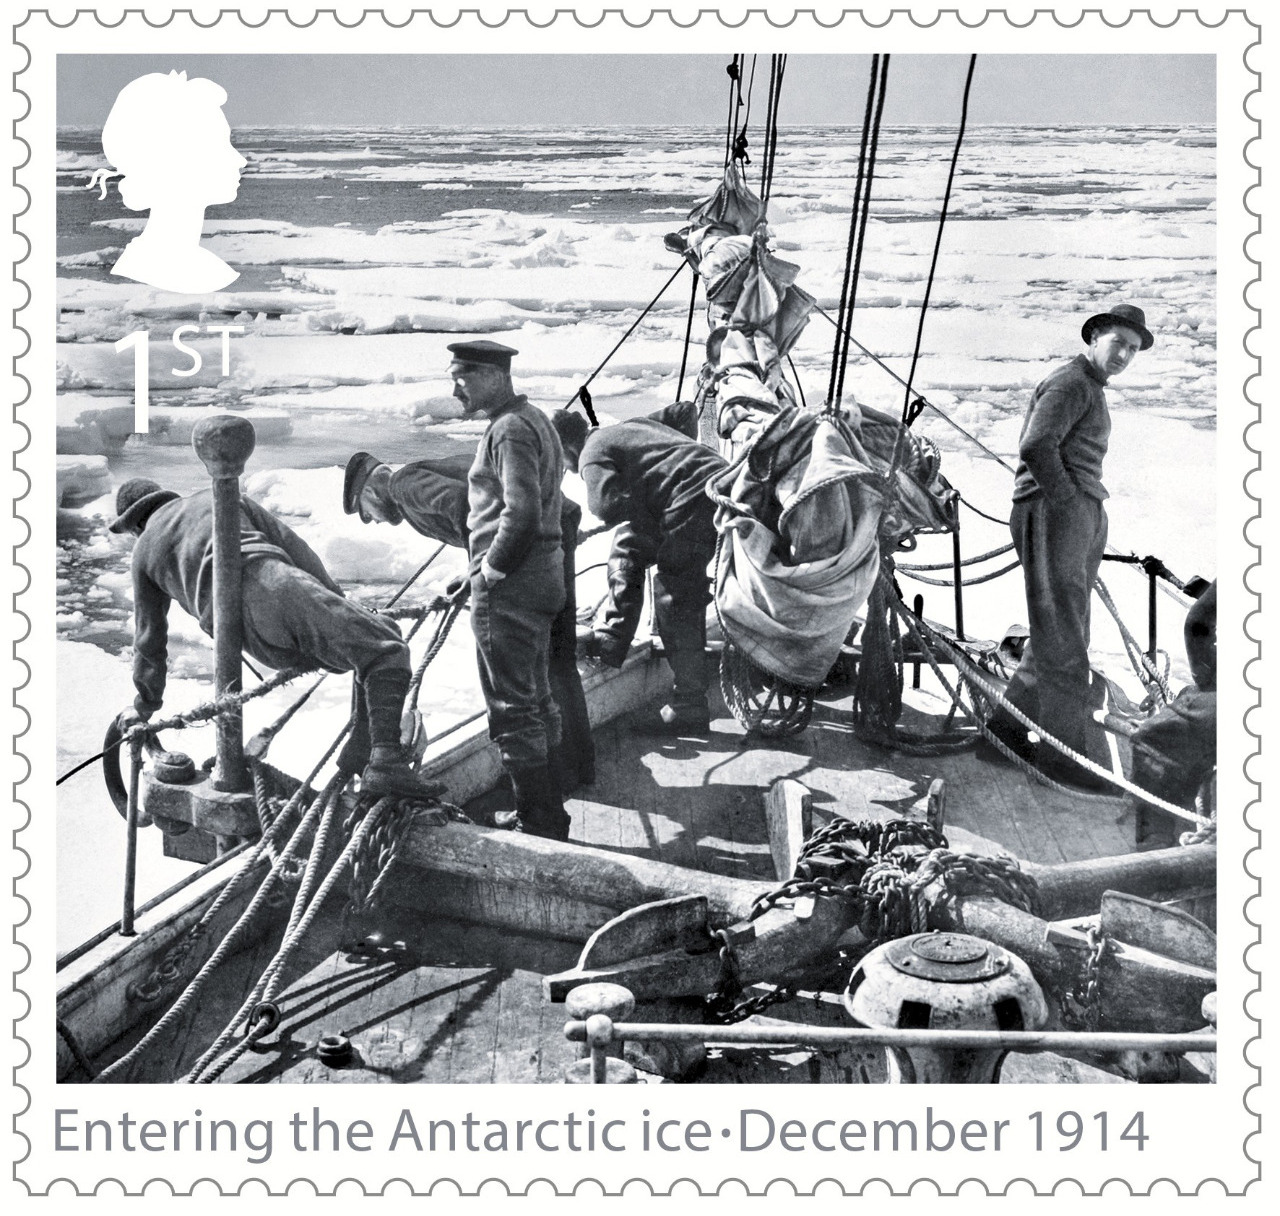 COMMEMORATIVE STAMP OF THE ENDURANCE LAUNCH